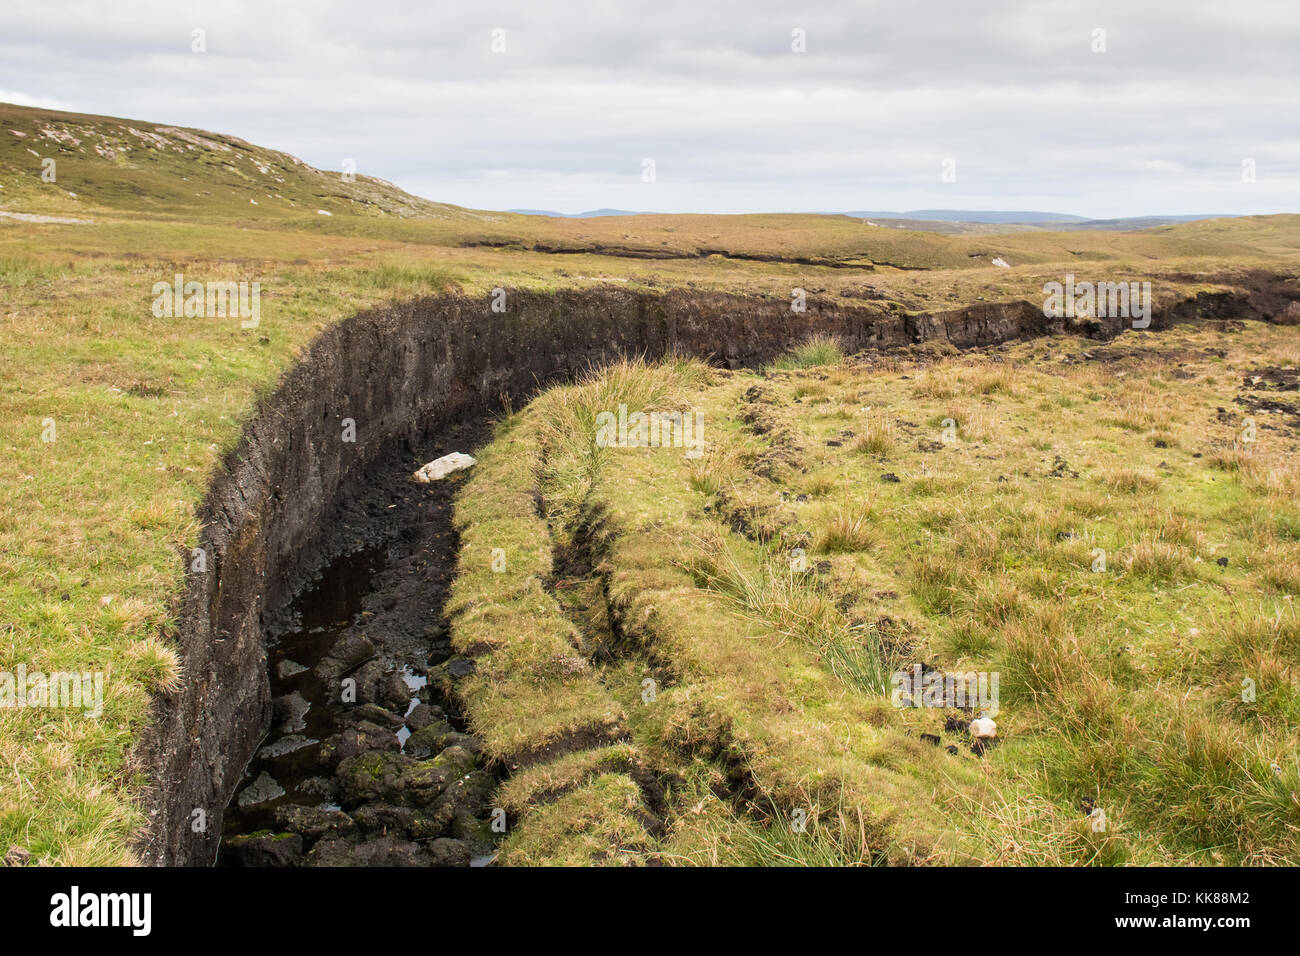 Peat, Scotland - worked bank of peat dug for fuel in the Shetland Islands, Scotland, UK - Stock Image